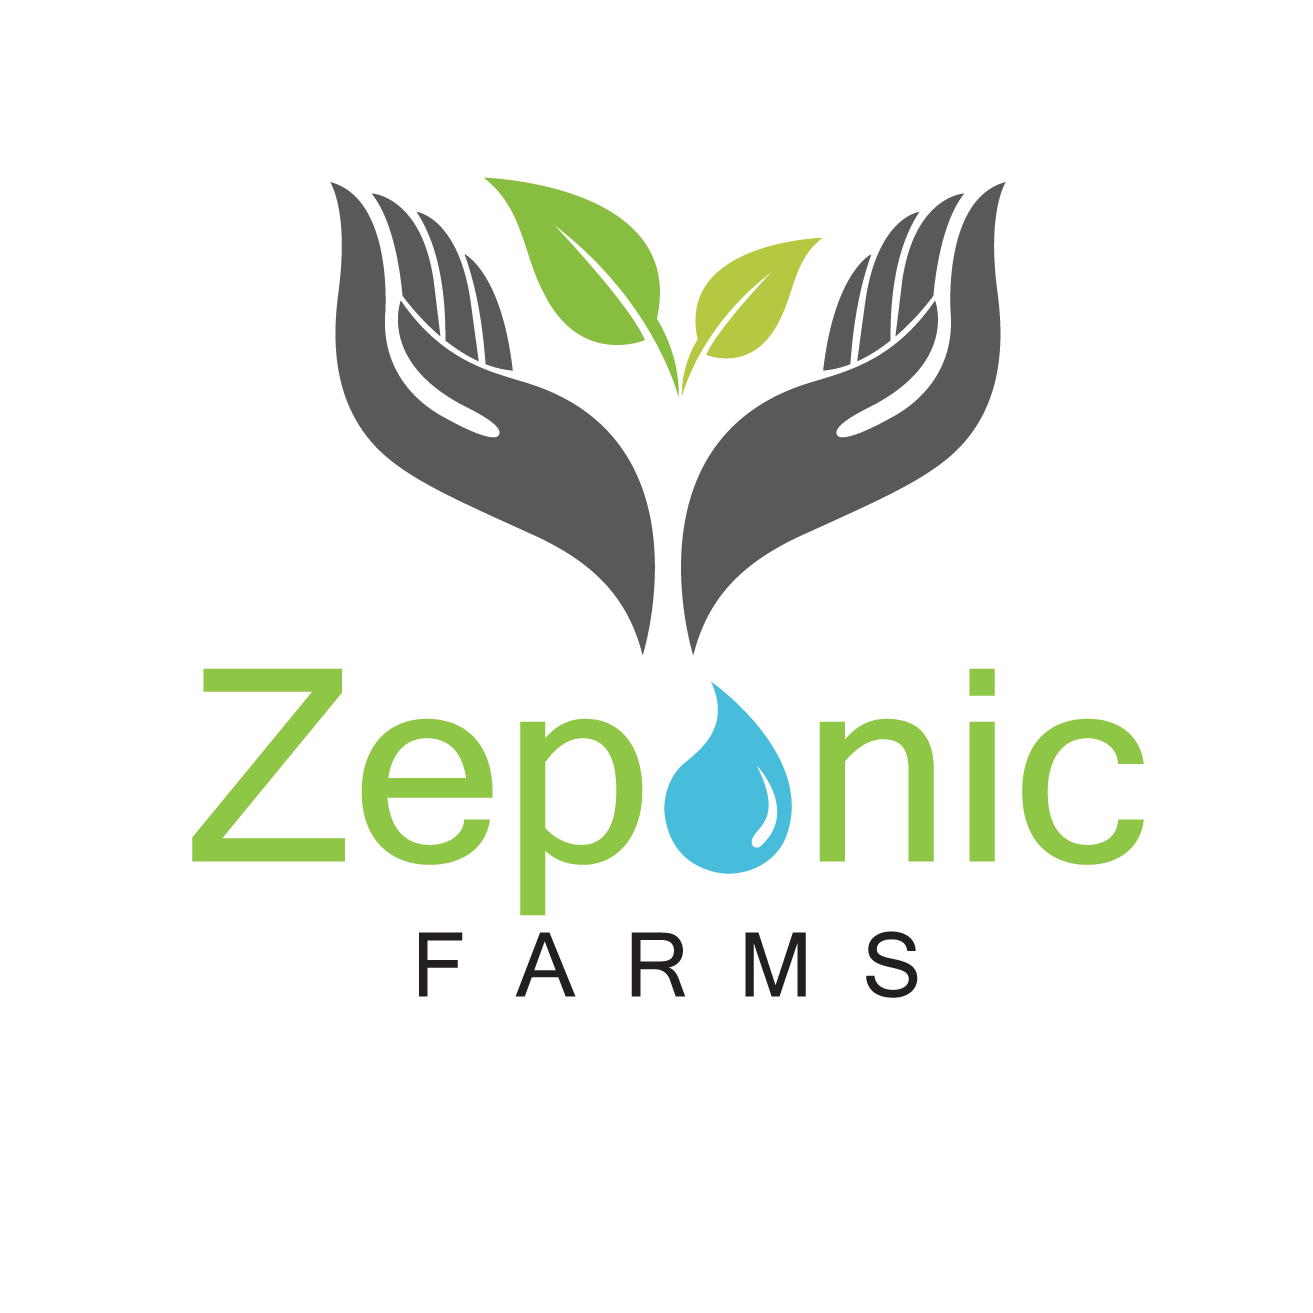 Zeponic Farms